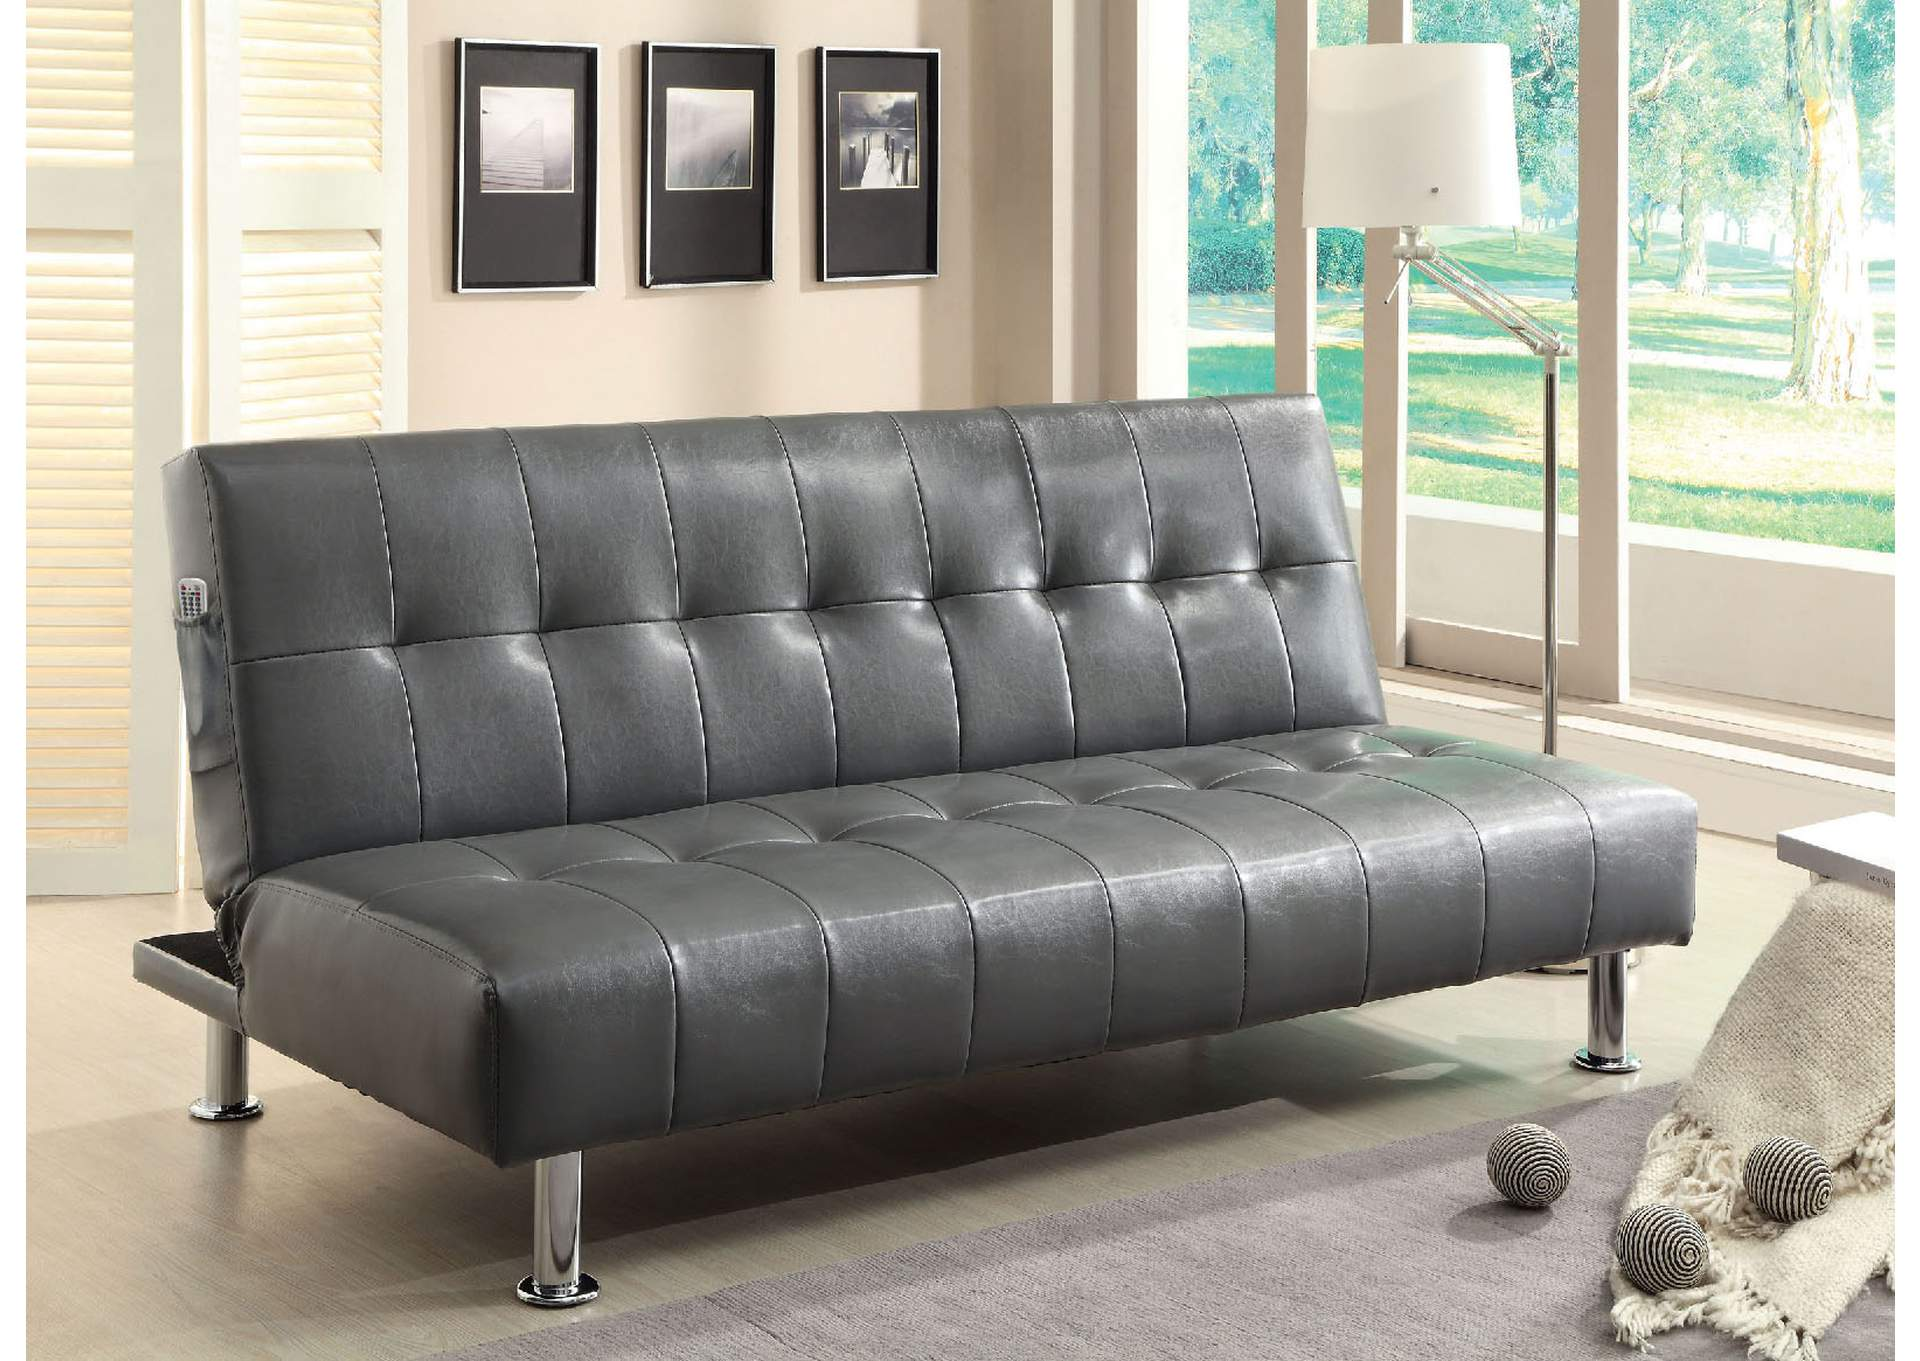 Utah Furniture Direct - Ogden, Utah Bulle Gray Leatherette ...